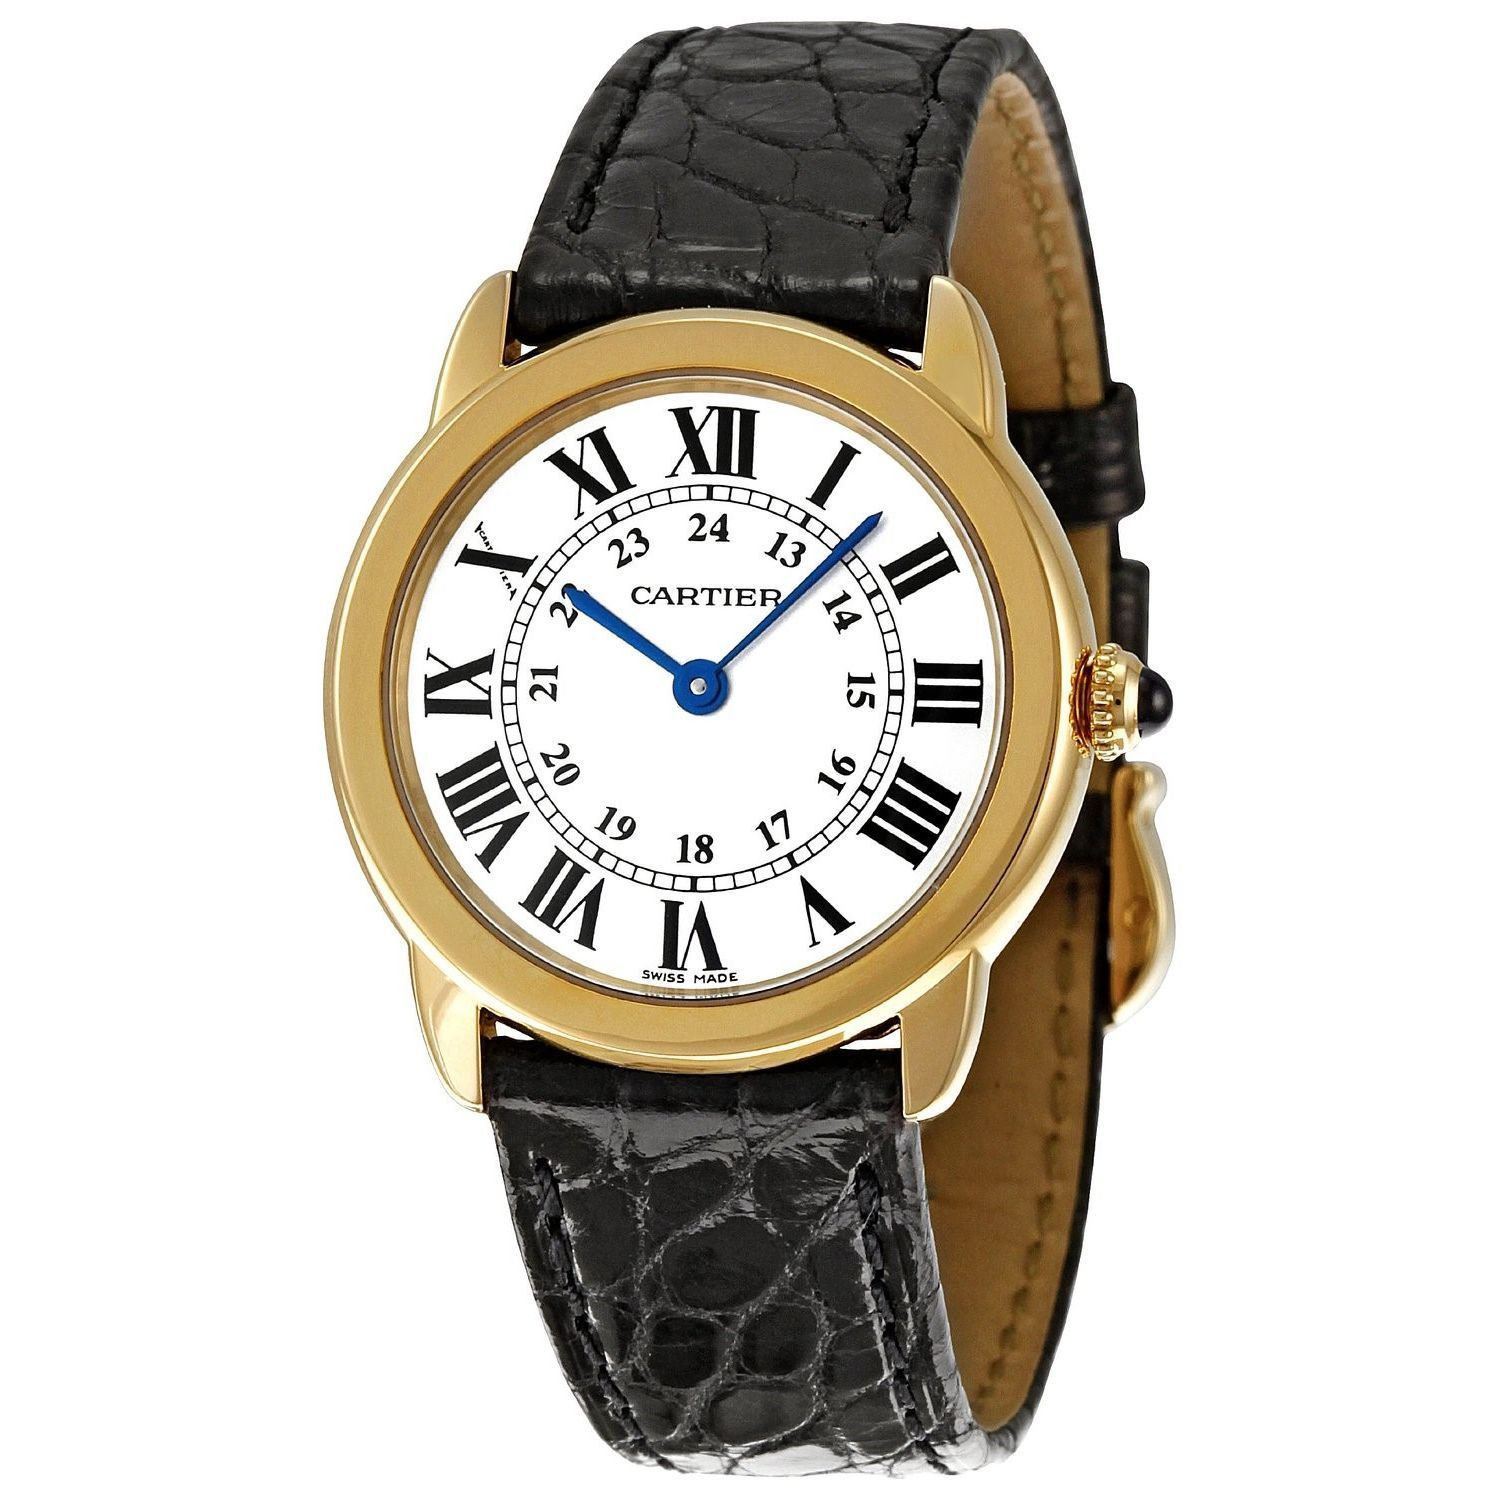 Cartier Watches Cartier Women S W6700355 Ronde Solo 18kt Yellow Gold Black Leather Watch